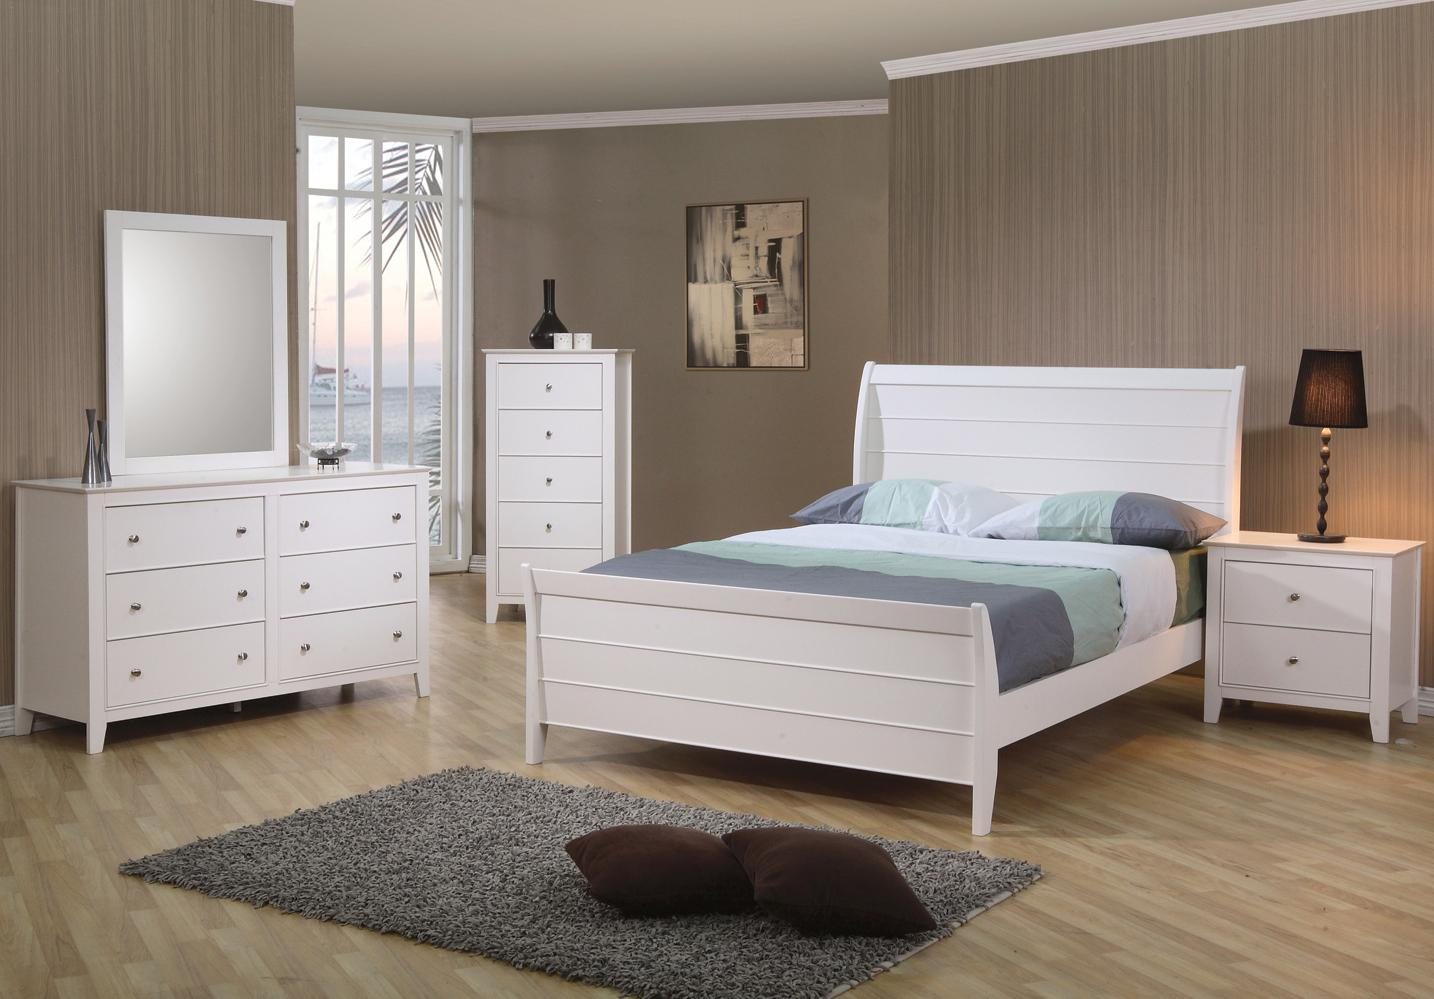 Coaster furniture selena bedroom set broadway furniture for Bedroom dresser sets